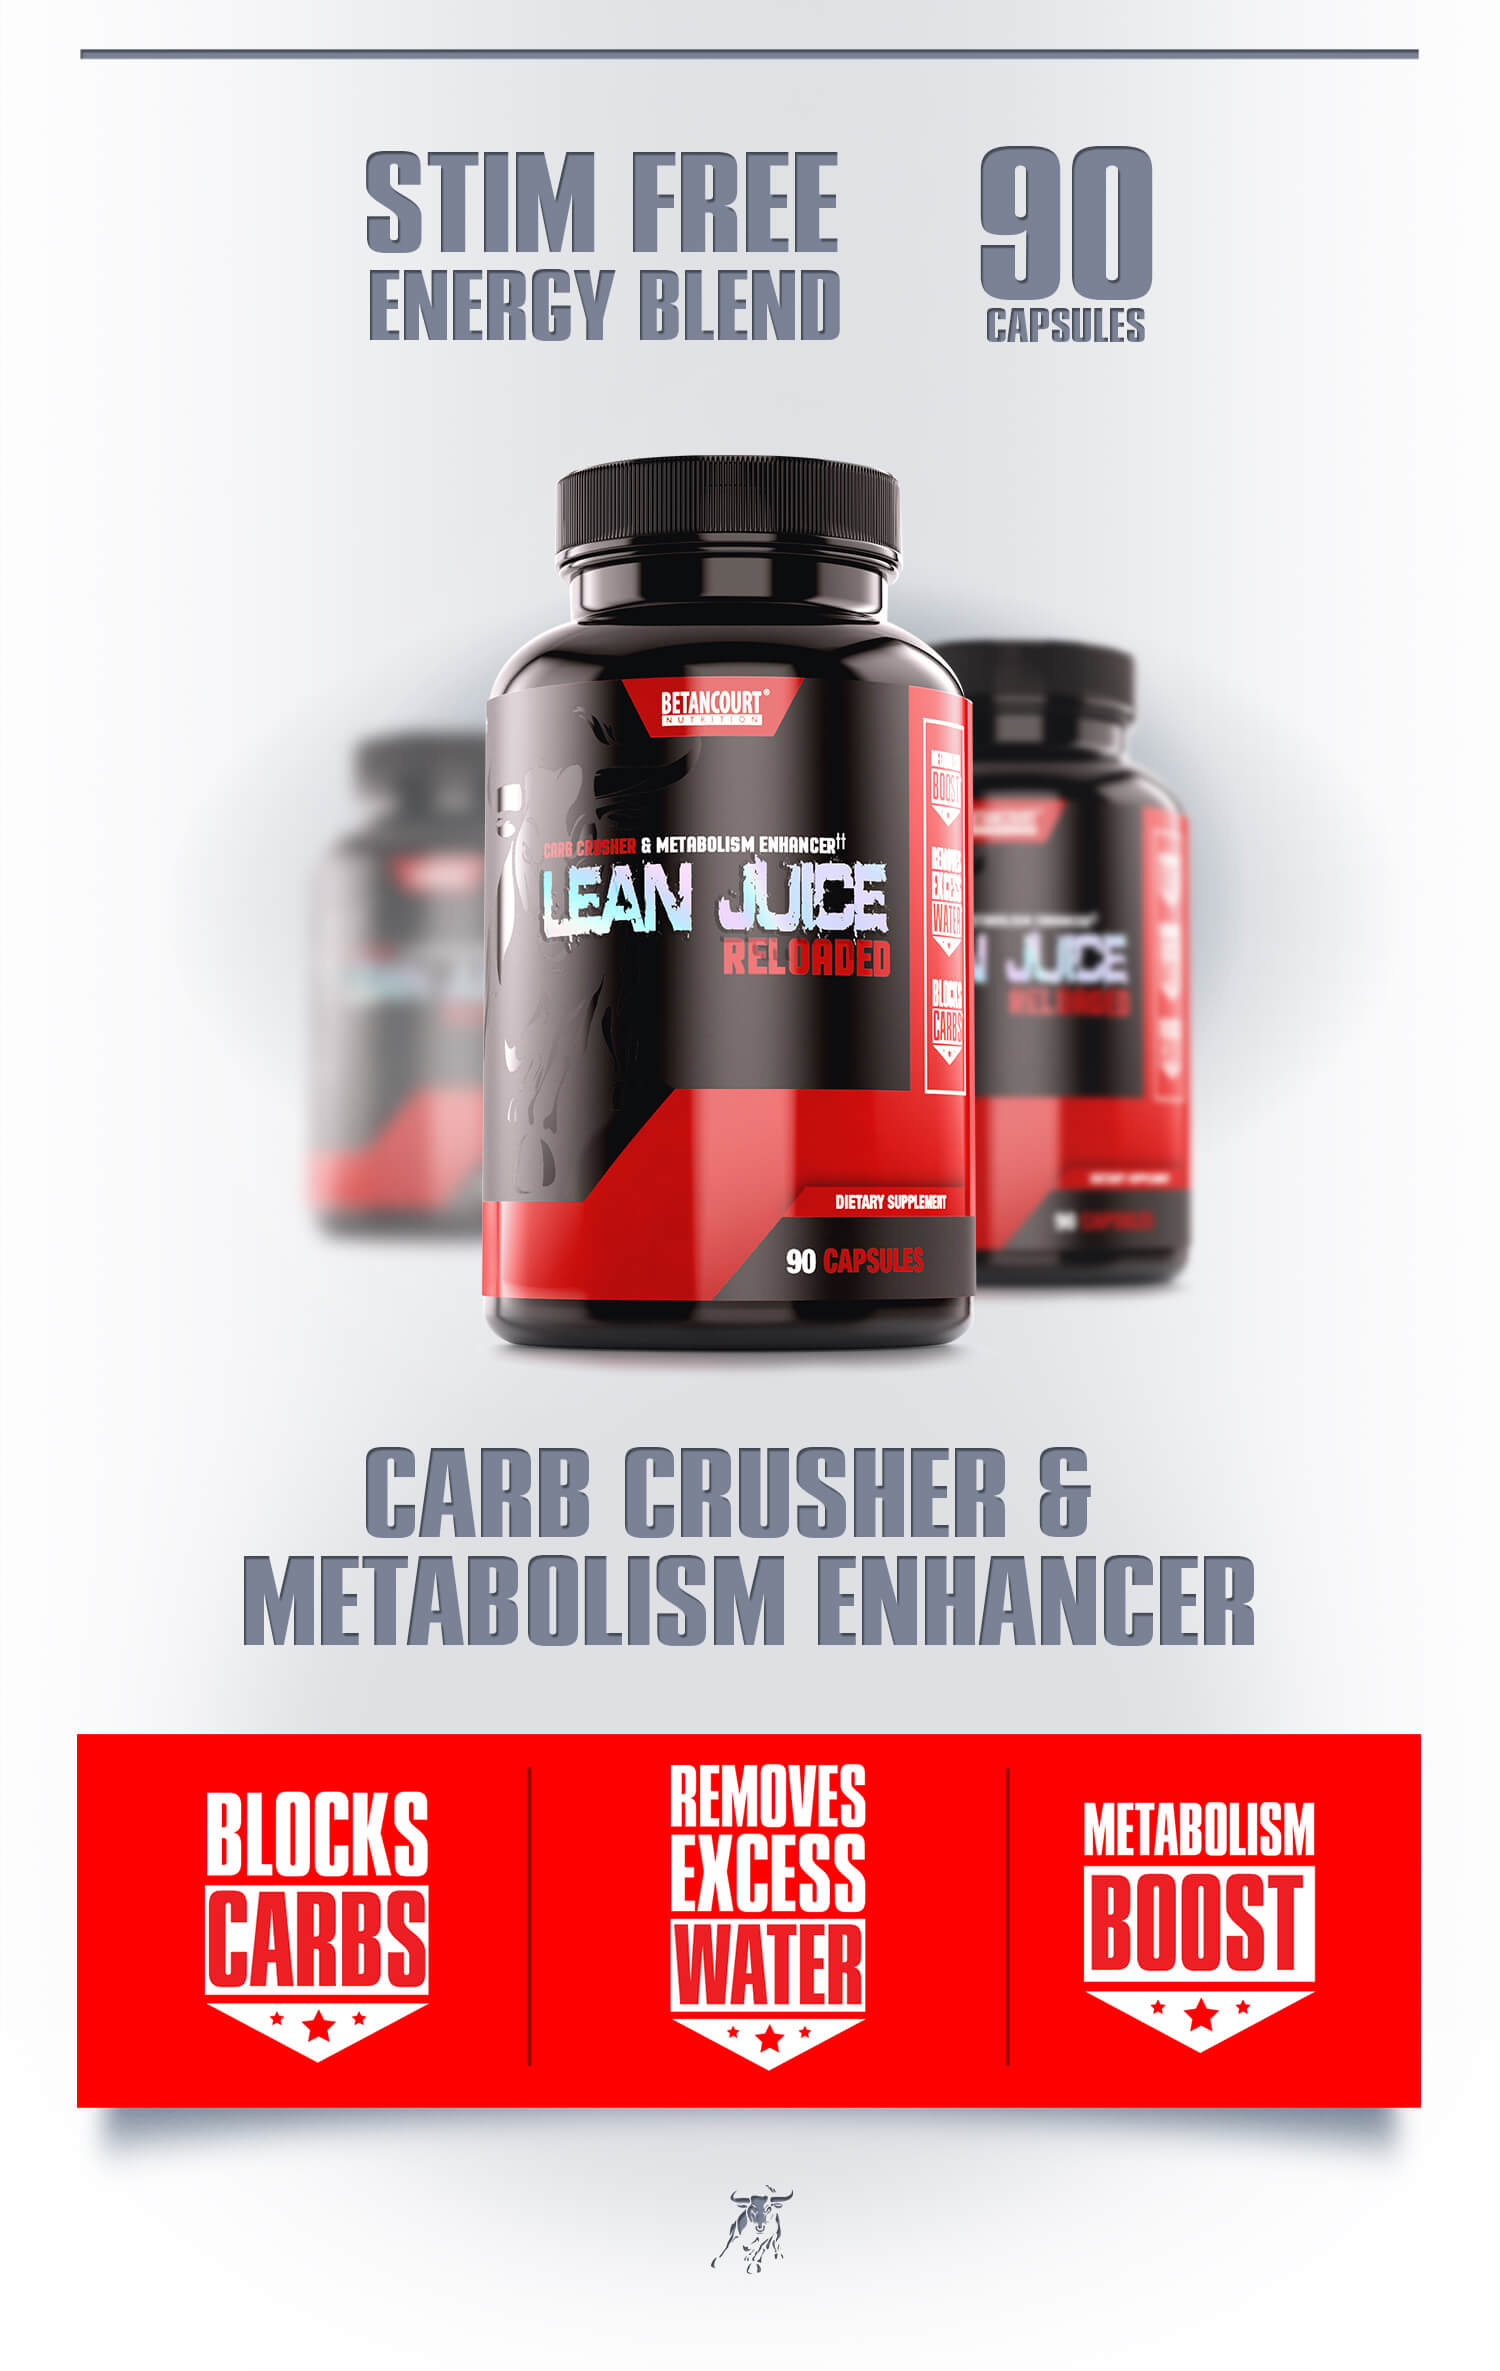 Lean Juice - Betancourt Nutrition - CARB CRUSHER & METABOLISM ENHANCER